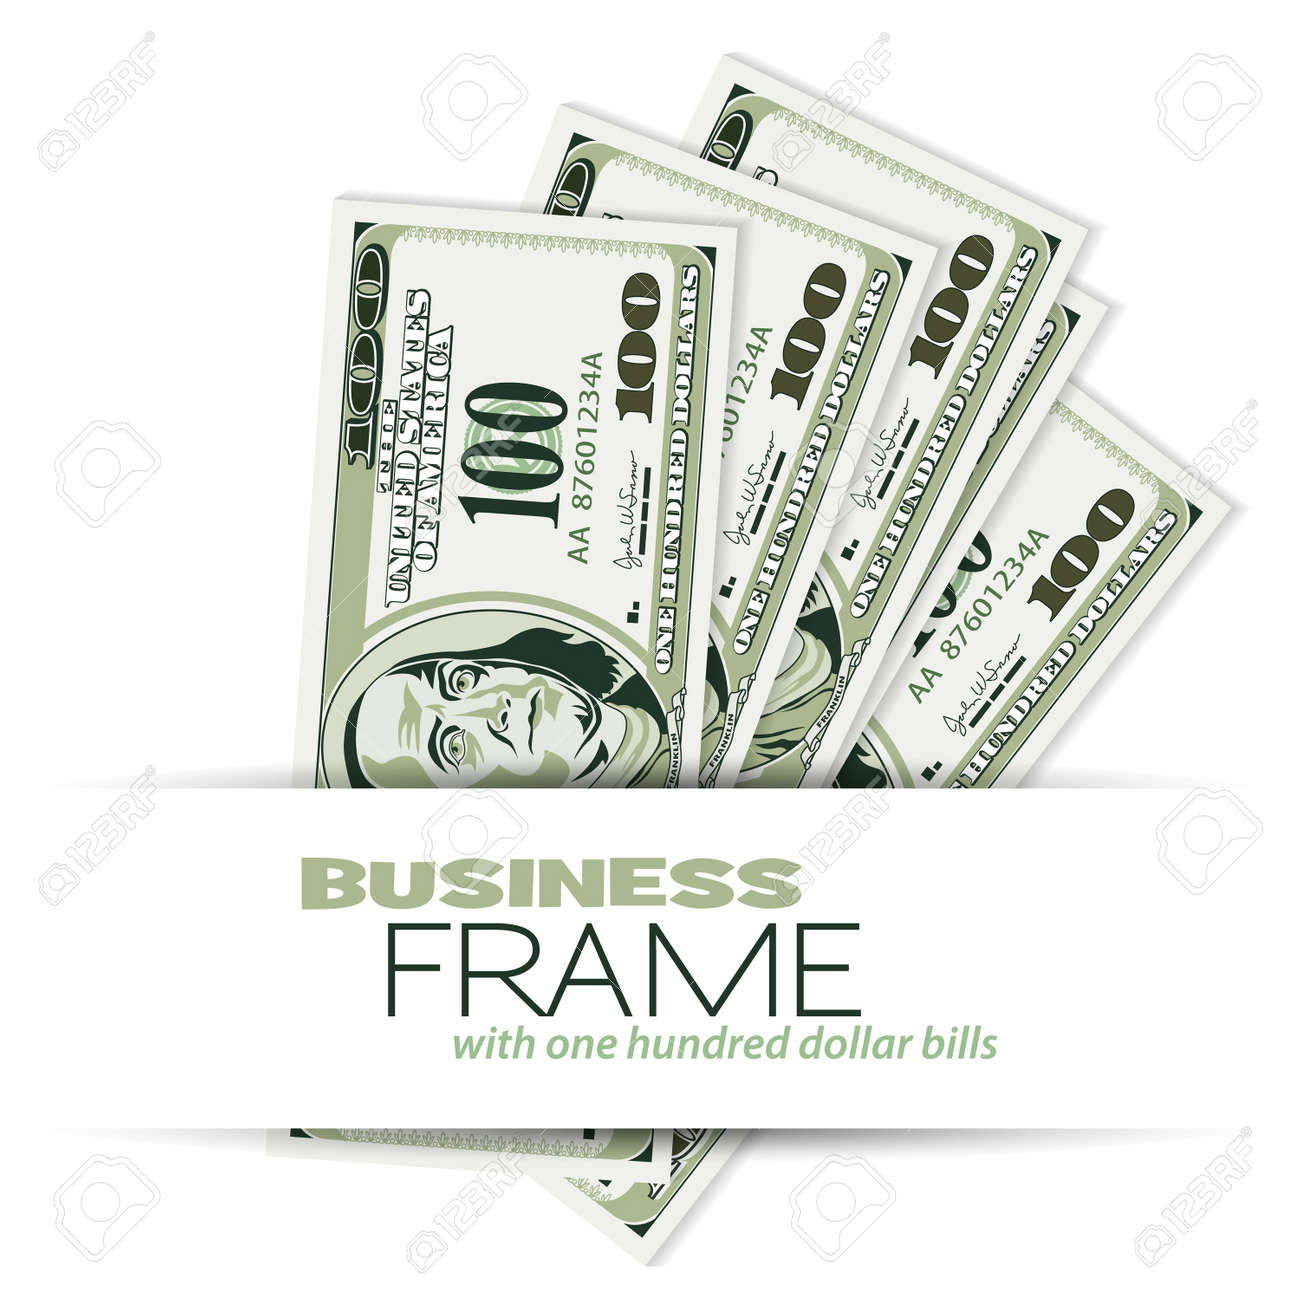 Business Frame With Dollar Bills, Template For Design Royalty Free ...